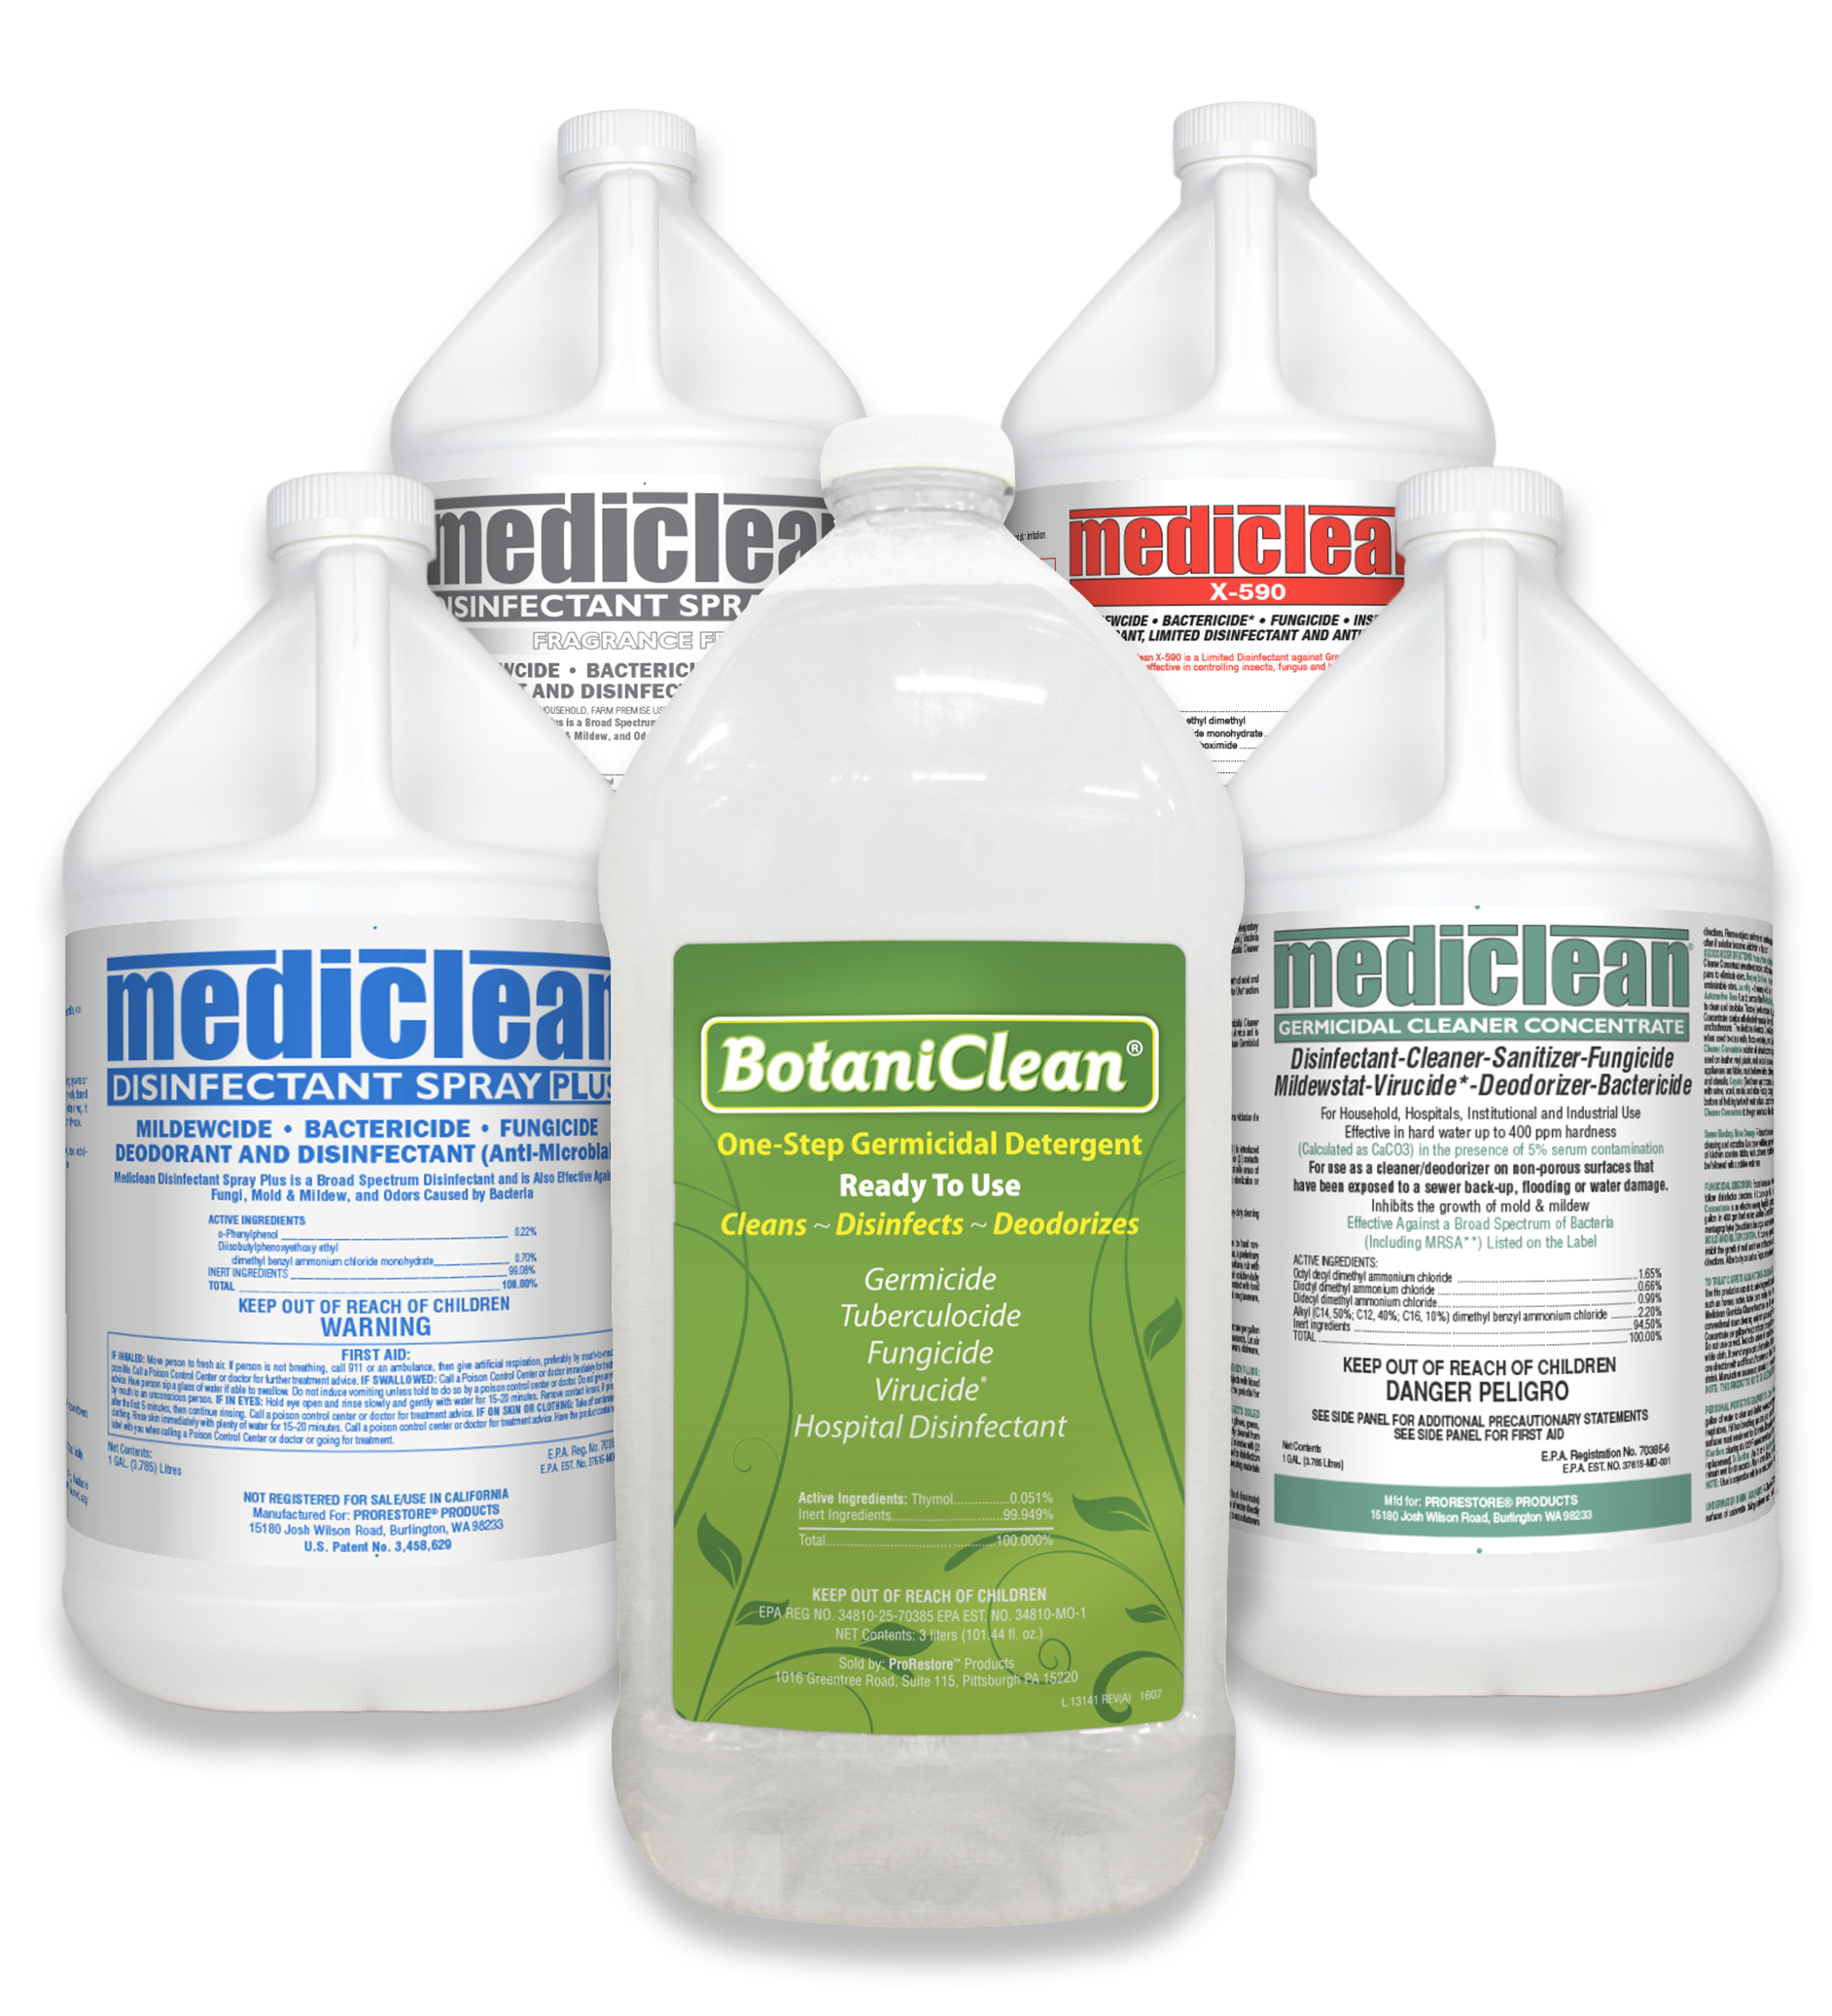 mediclean-classicfam-bcfront-x-590-dspff.png